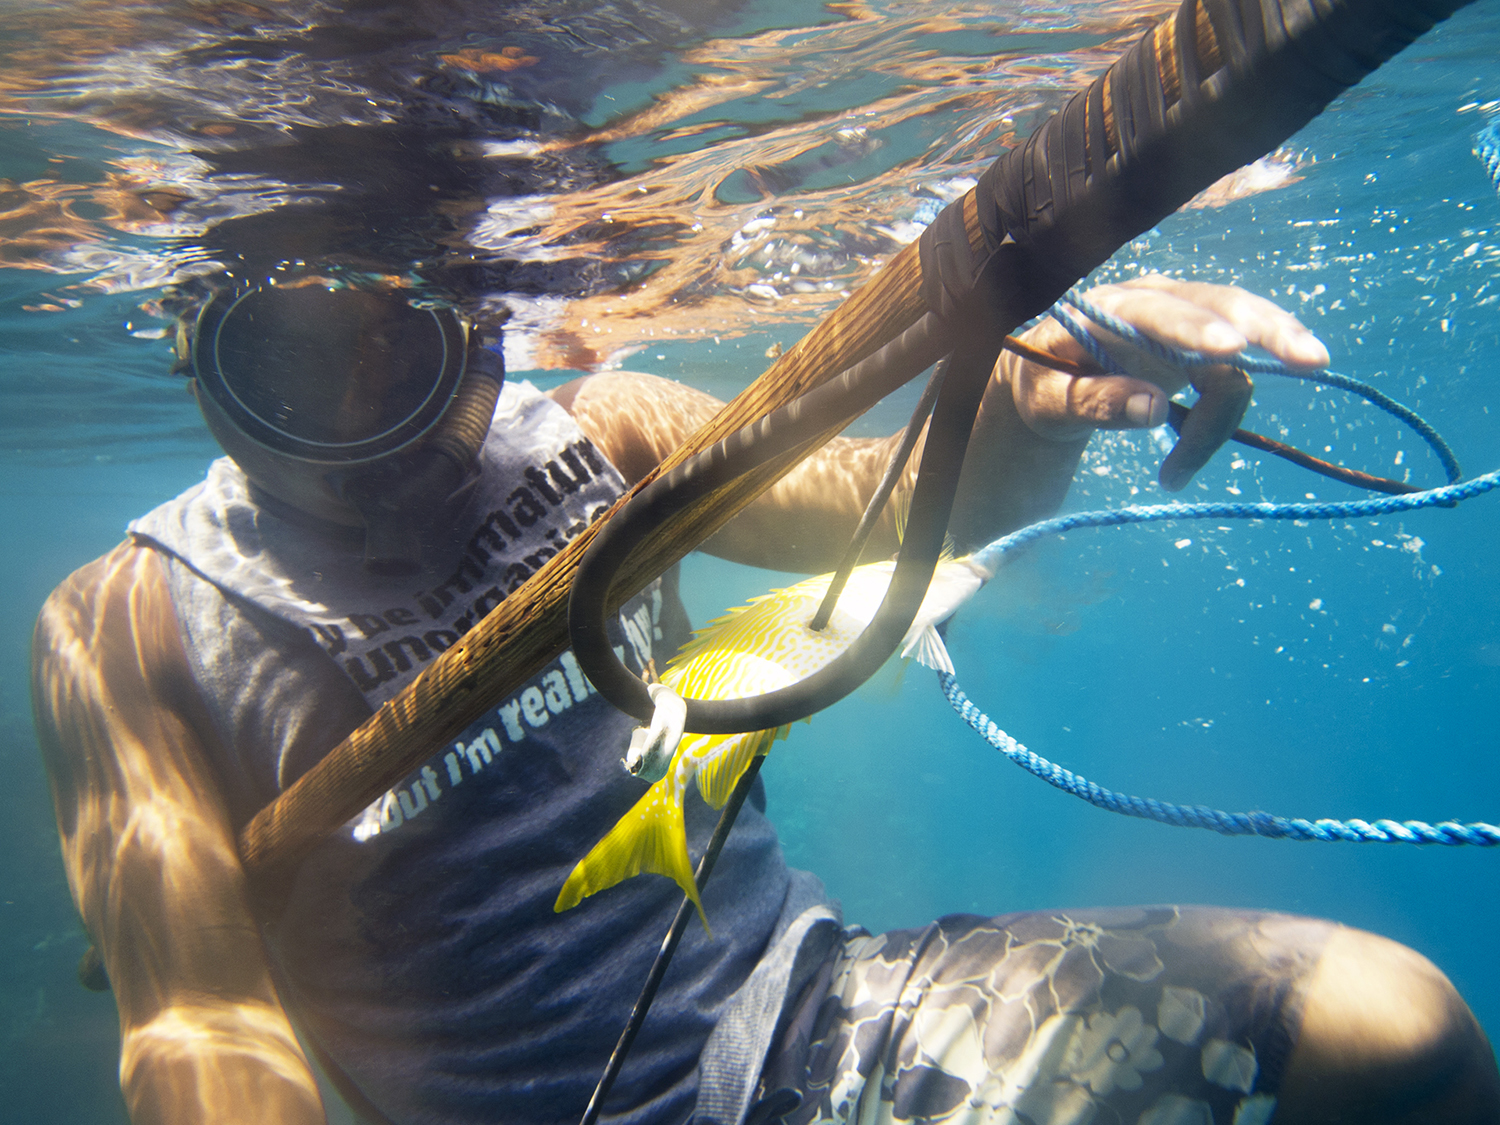 <p>Fishing is an important industry in Micronesia, not only for personal consumption but as a way to develop the economy through commercial operations.</p>